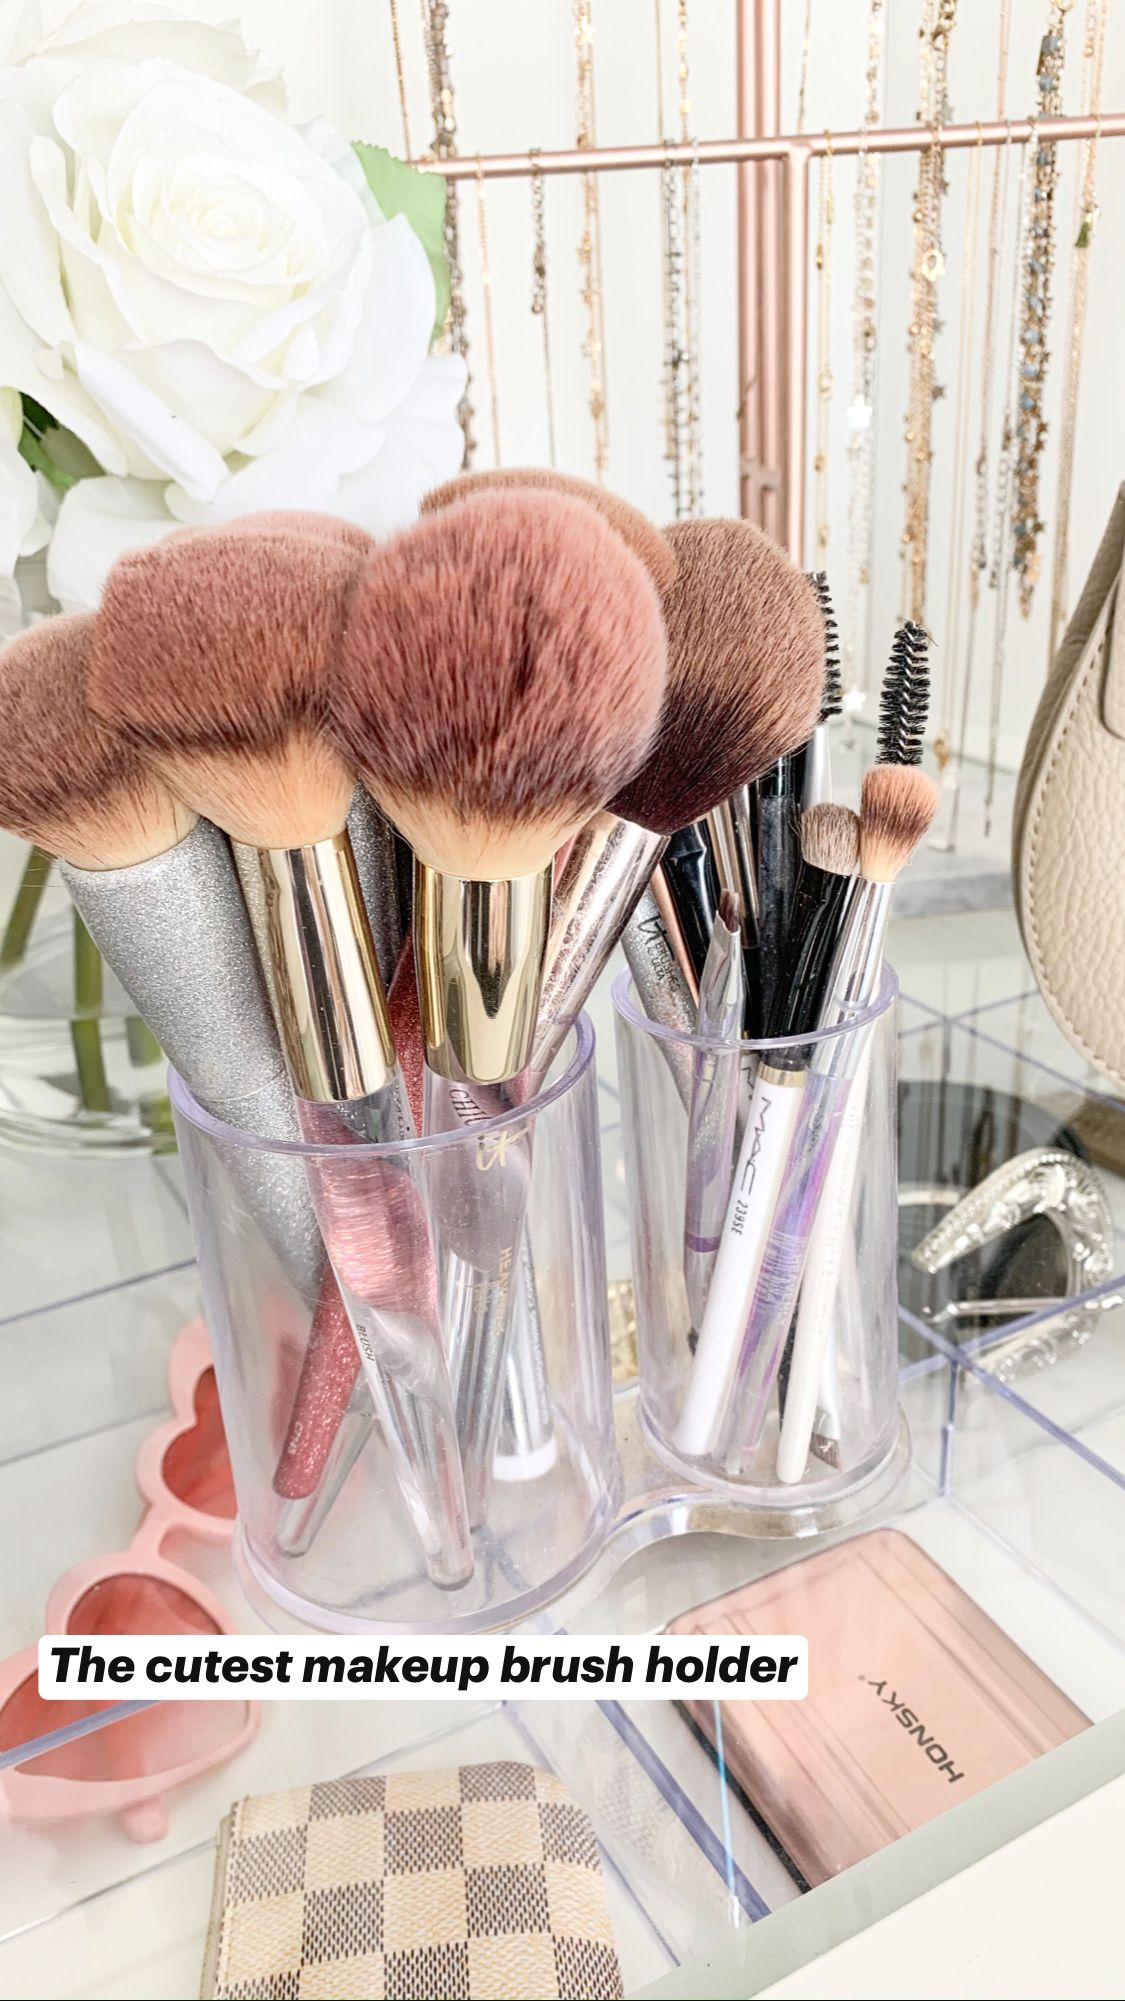 The cutest makeup brush holder